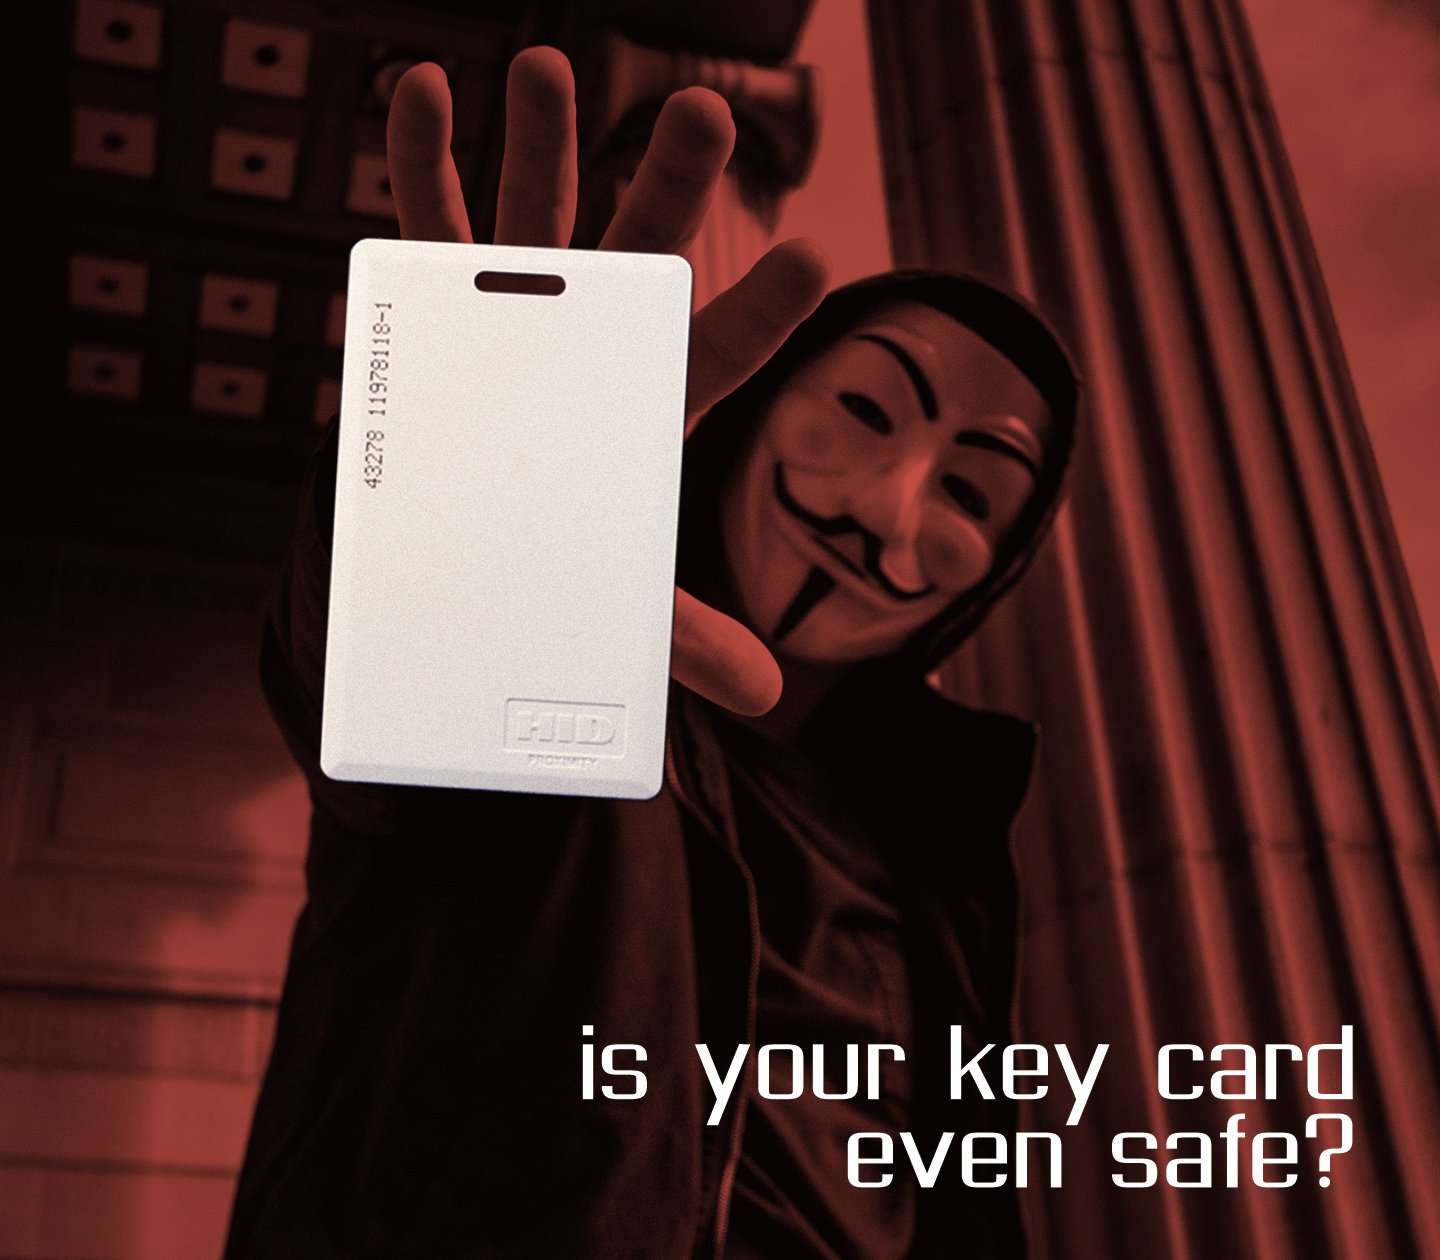 Is your key card even safe